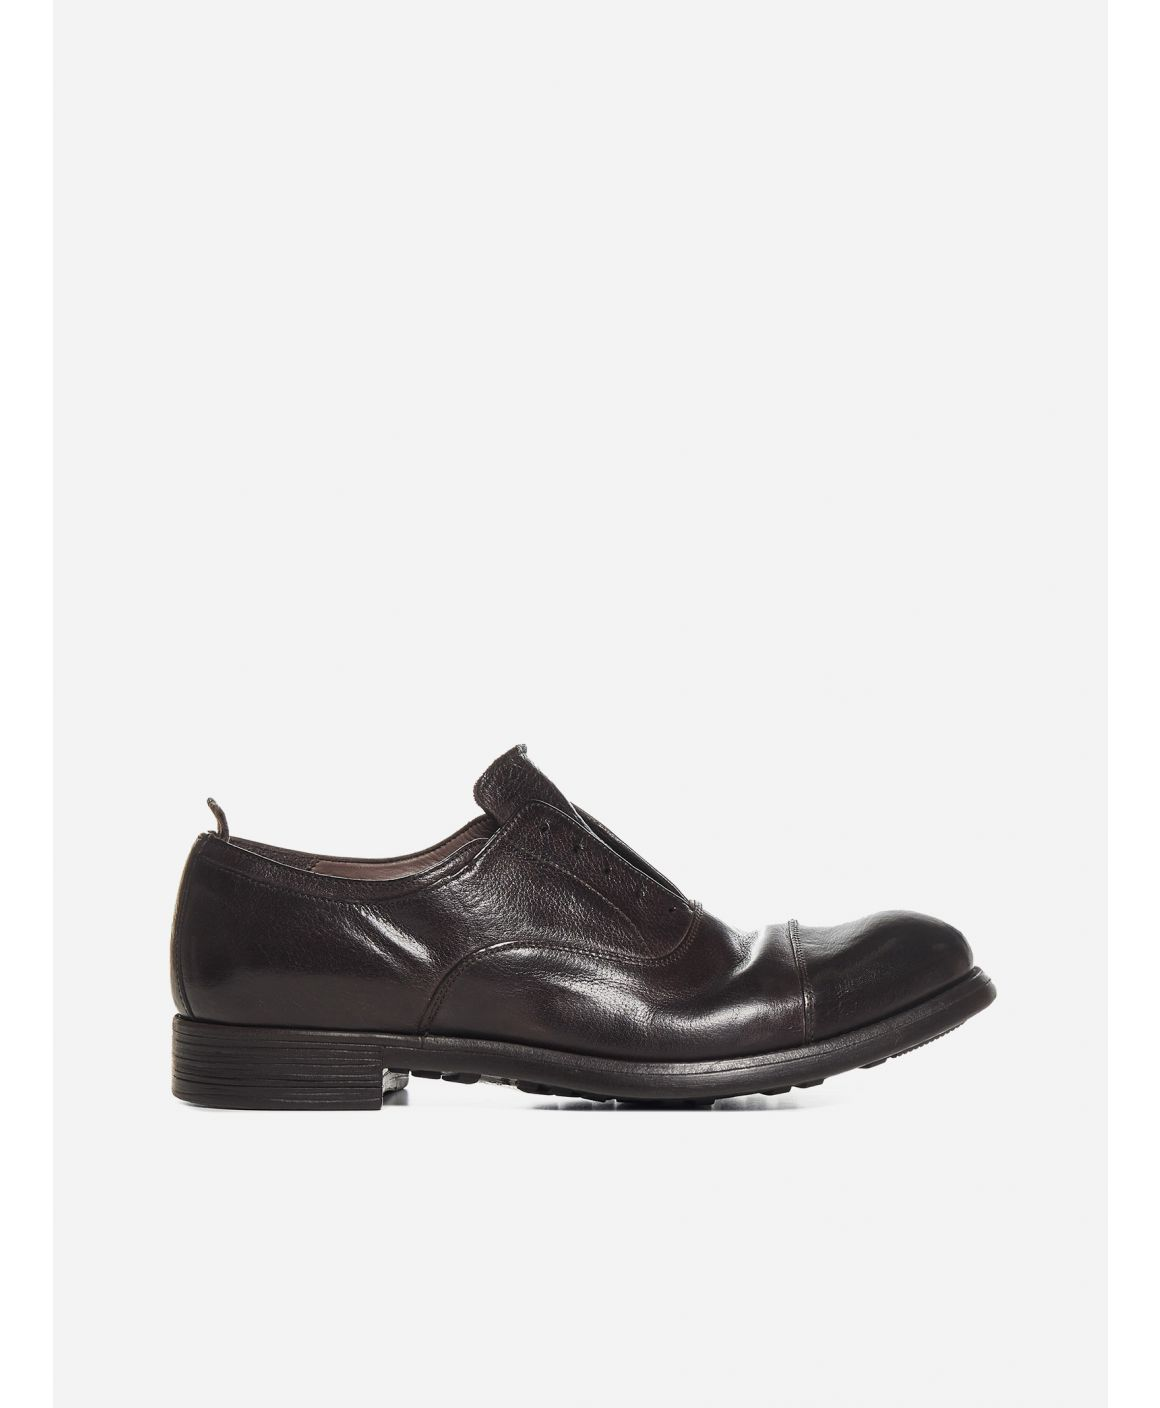 Chronicle 3 leather derby shoes